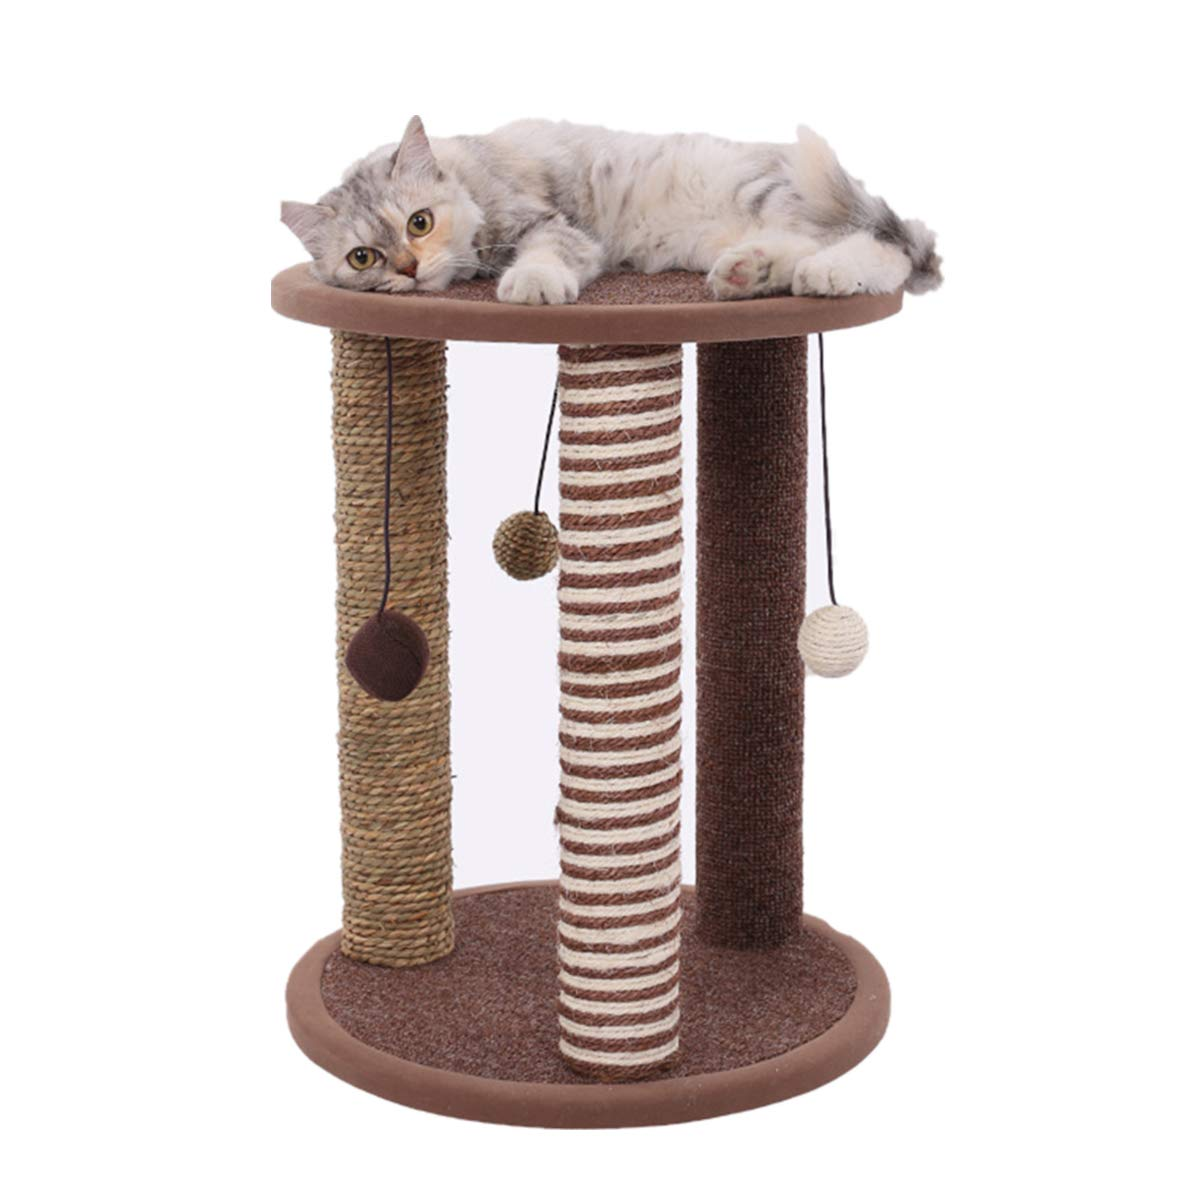 "Cat Activity Tree Sisal Cat Scratching Post Seagrass Cat Furniture 20 "" Tripod Interactive Cat Toy with Hanging Balls for Kittens Pets"